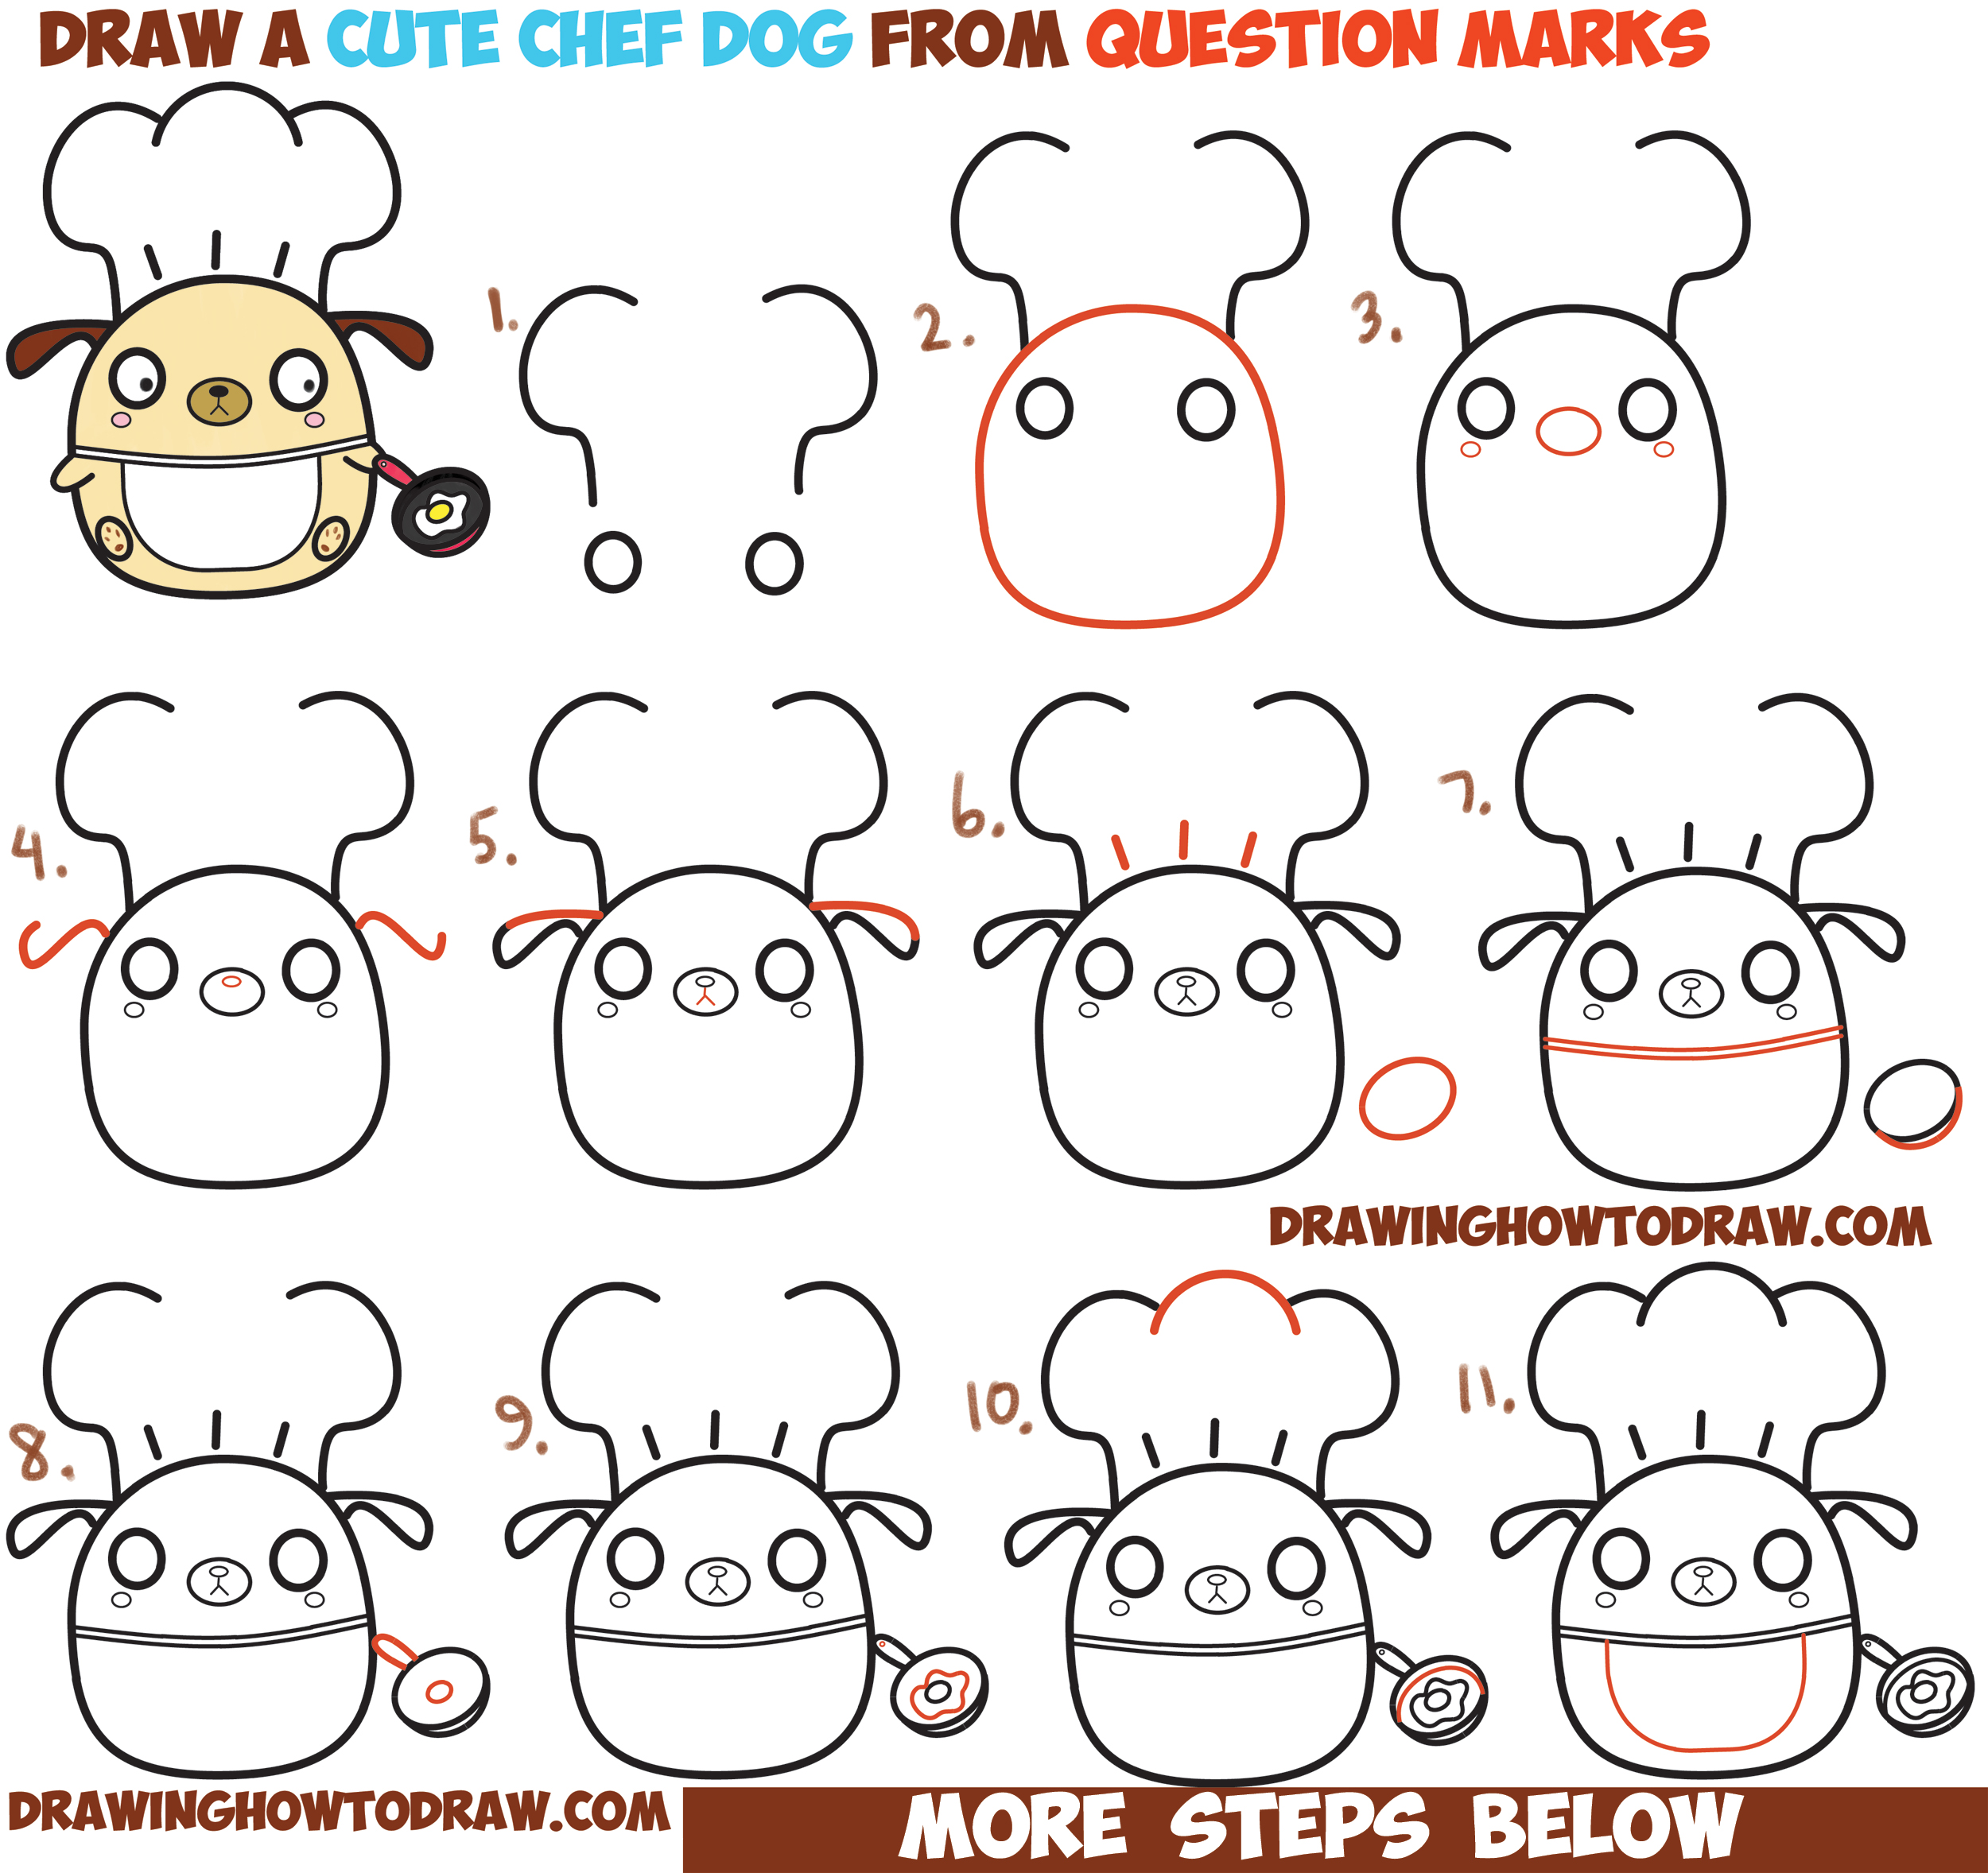 How to Draw Cute Kawaii Chibi Dog Chef Cooking from Question Mark Shapes with Easy Step by Step Drawing Tutorial for Kids